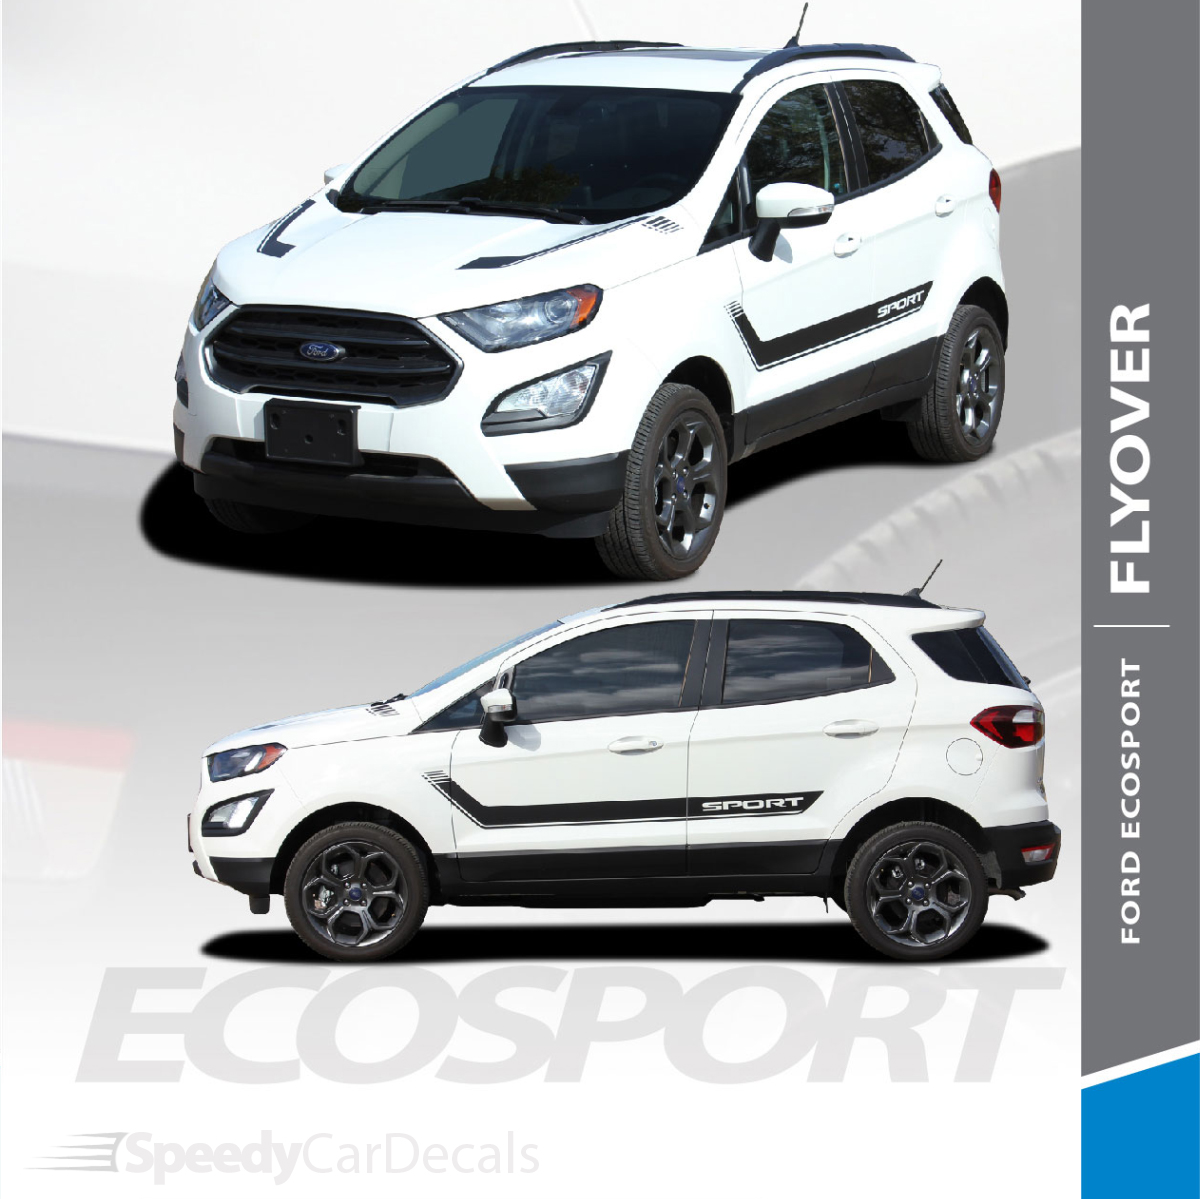 Graphics For Ford Ecosport Flyover Kit 2013 2016 2017 2018 2019